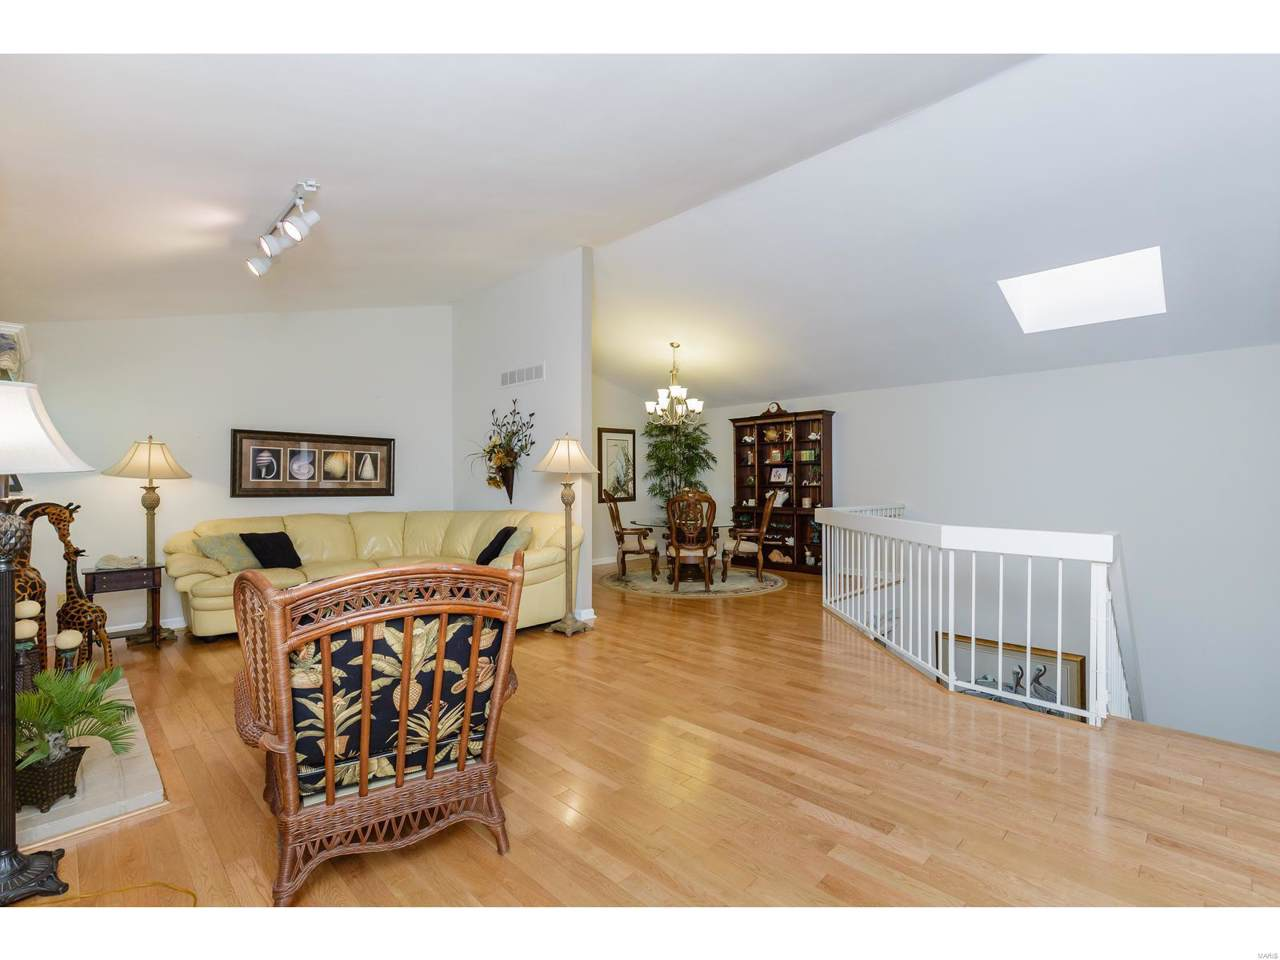 https://bt-photos.global.ssl.fastly.net/midamerica/1280_boomver_1_19078593-2.jpg